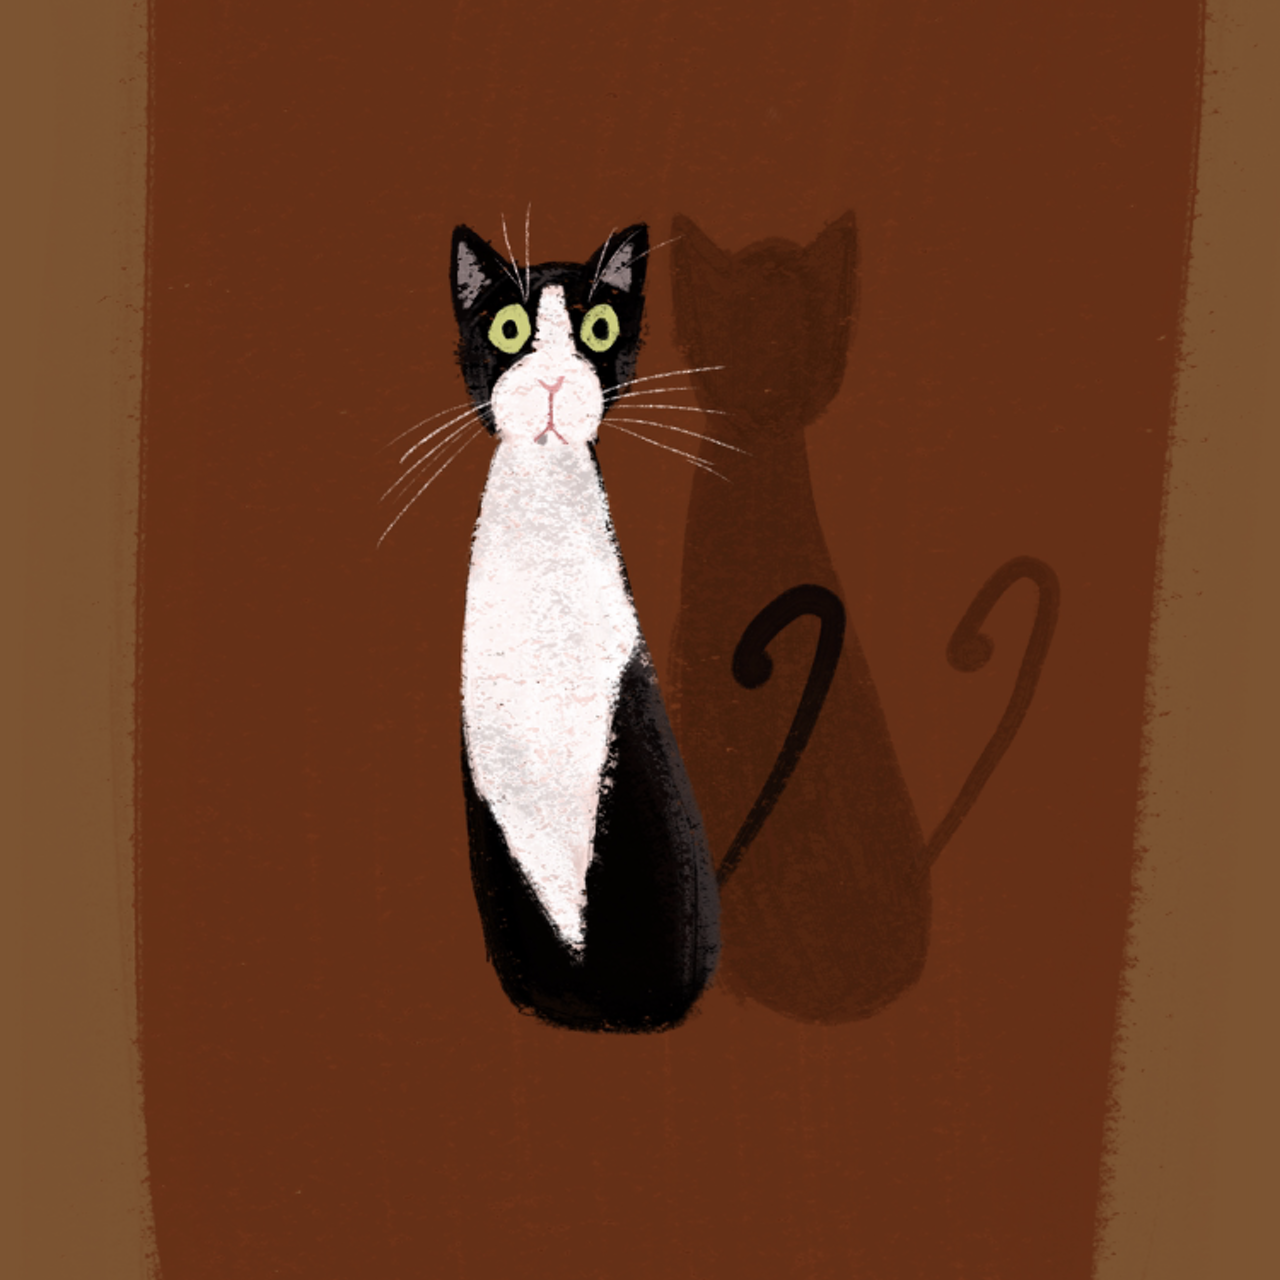 Timba the cat